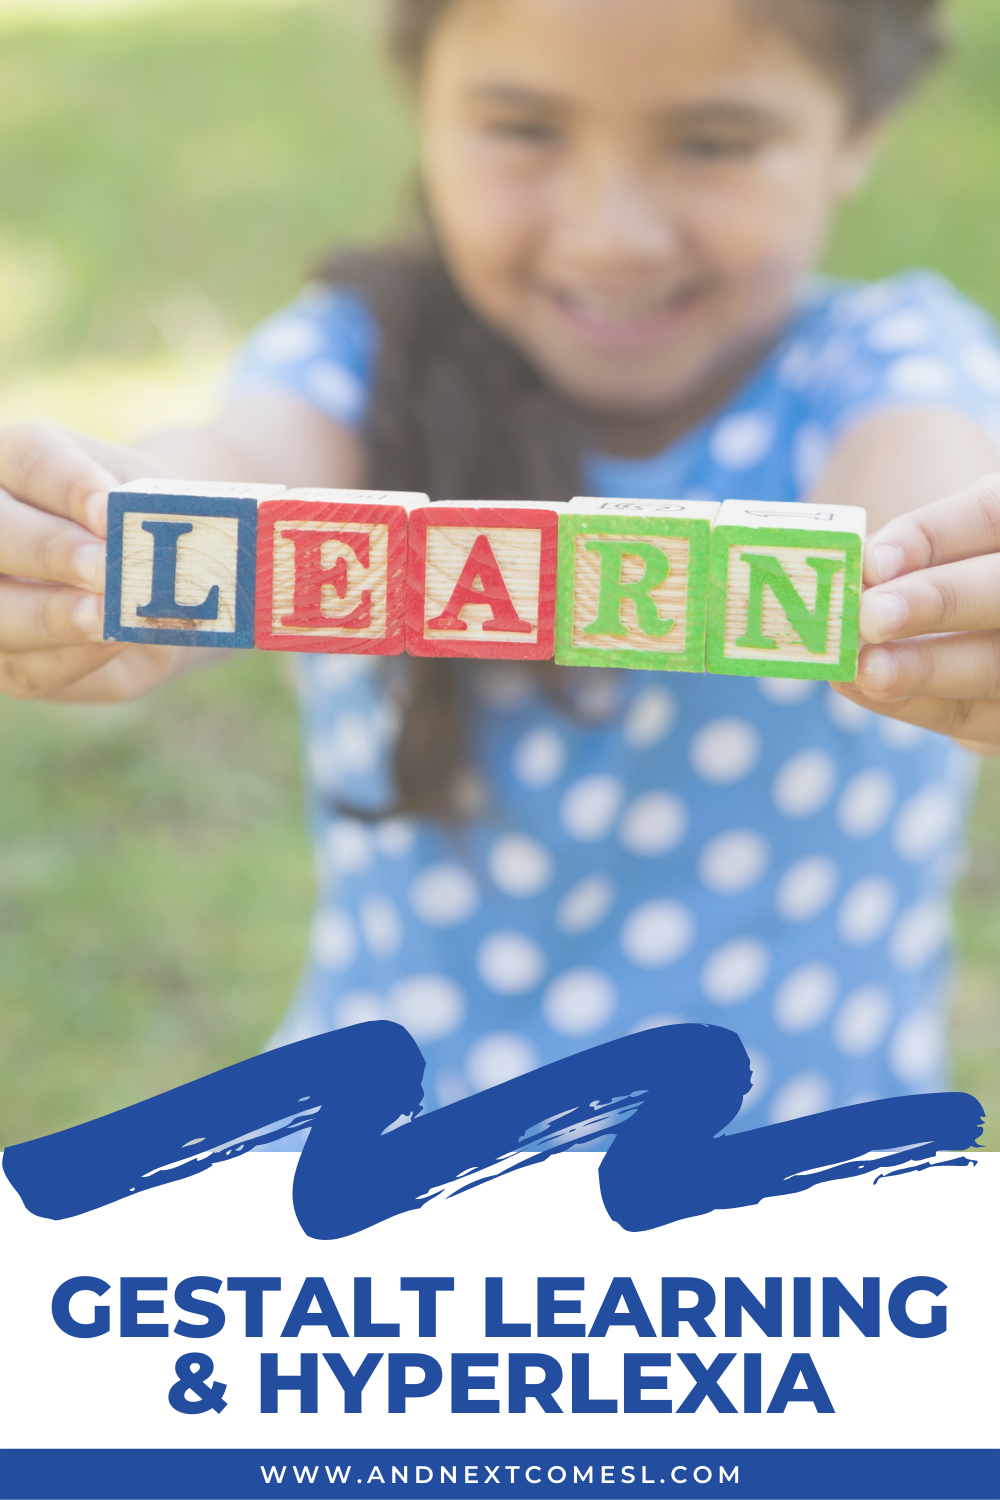 Gestalt learning and hyperlexia: what is a gestalt learner exactly? Learn more about gestalt processing of language here